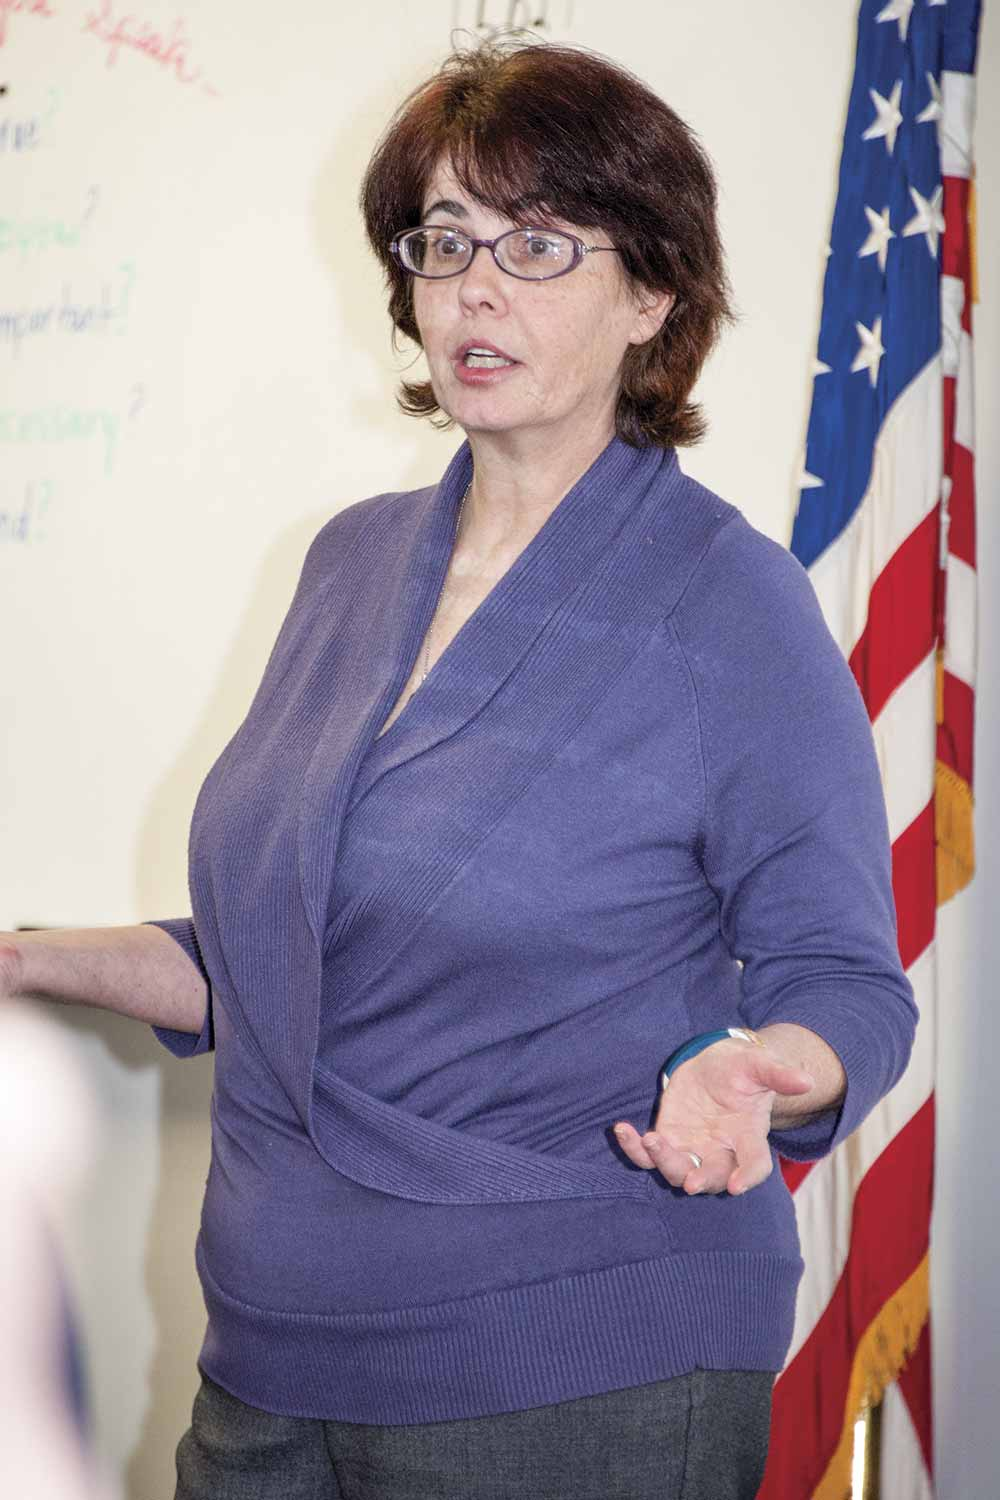 Shawn Herron has been a legal instructor at DOCJT since 1999. Her favorite topics to teach and discuss are anything related to the Fourth Amendment and search and seizure. (Photo by Jim Robertson)